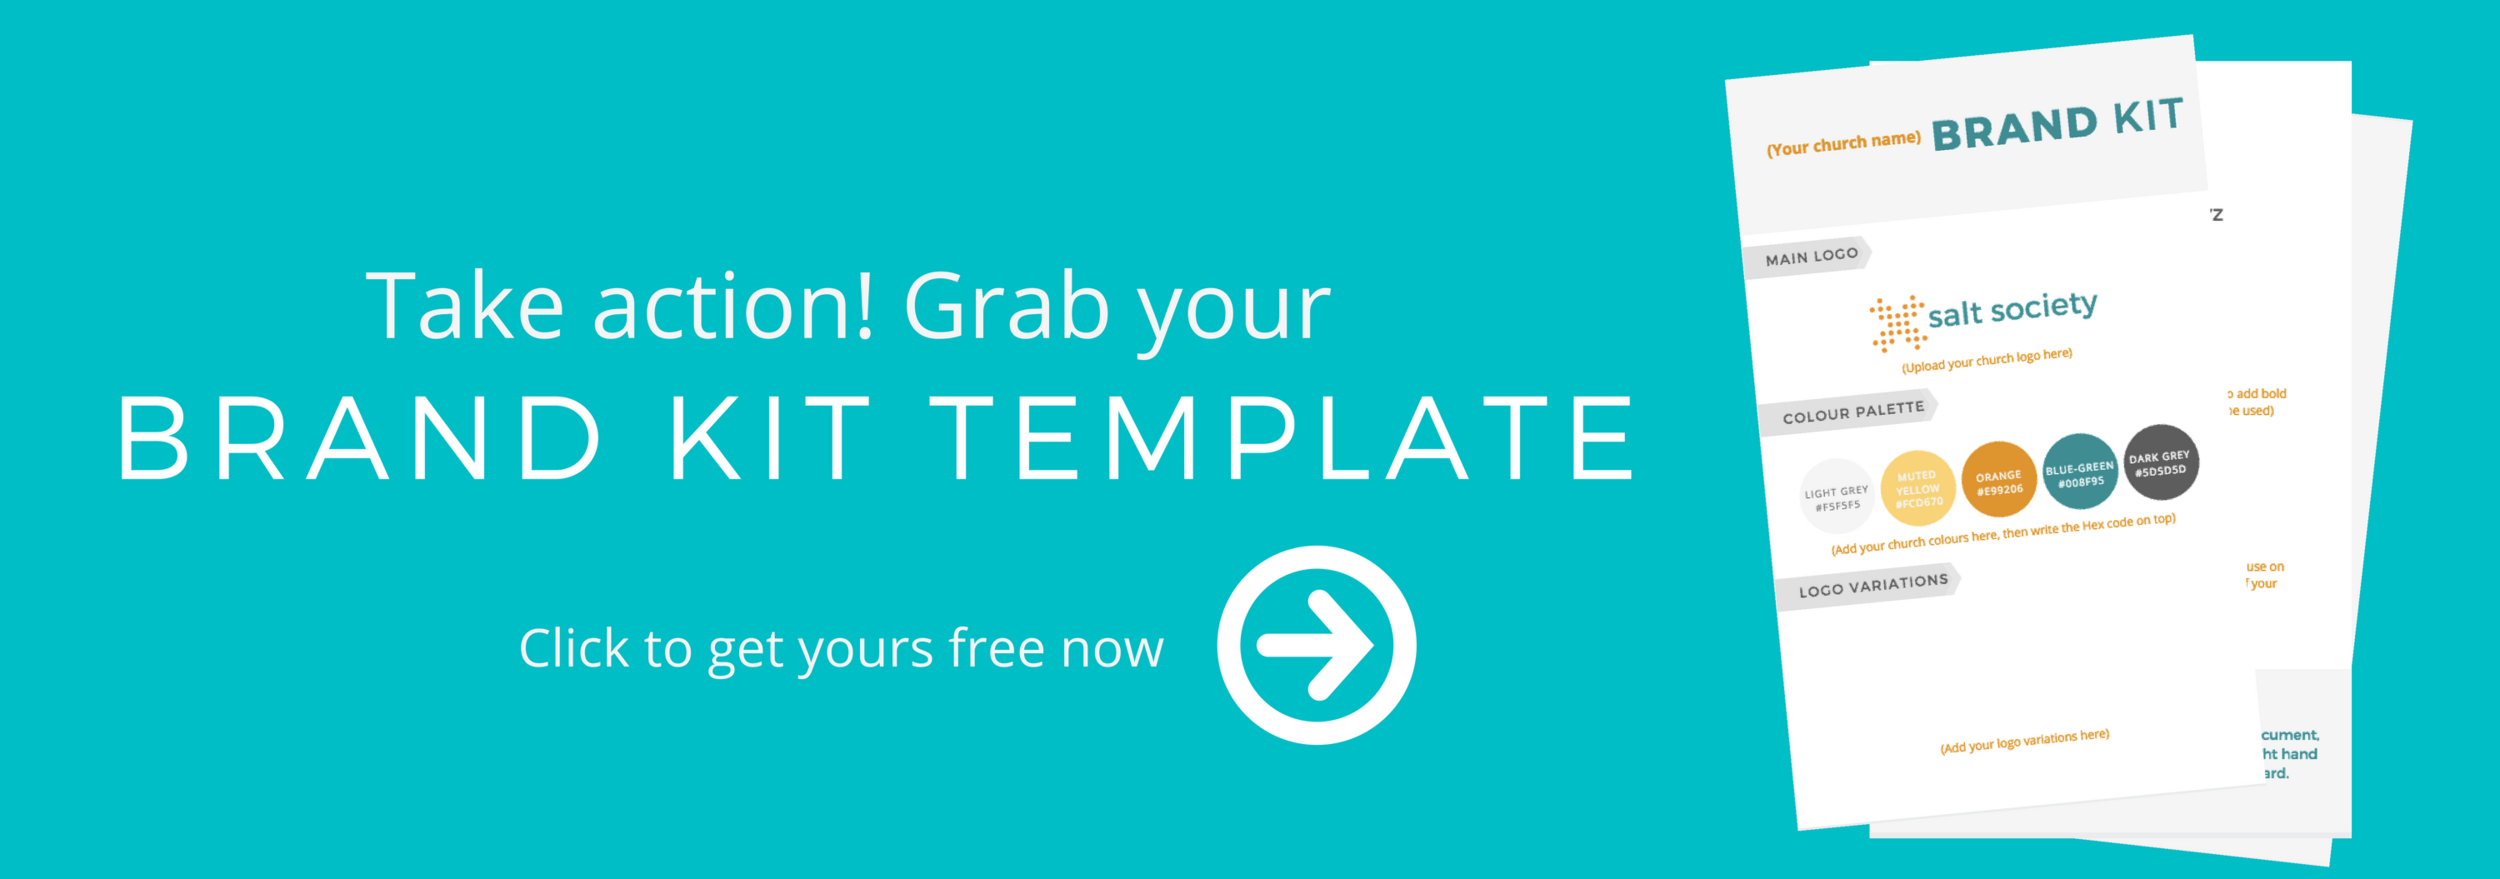 Canva brand kit template opt-in